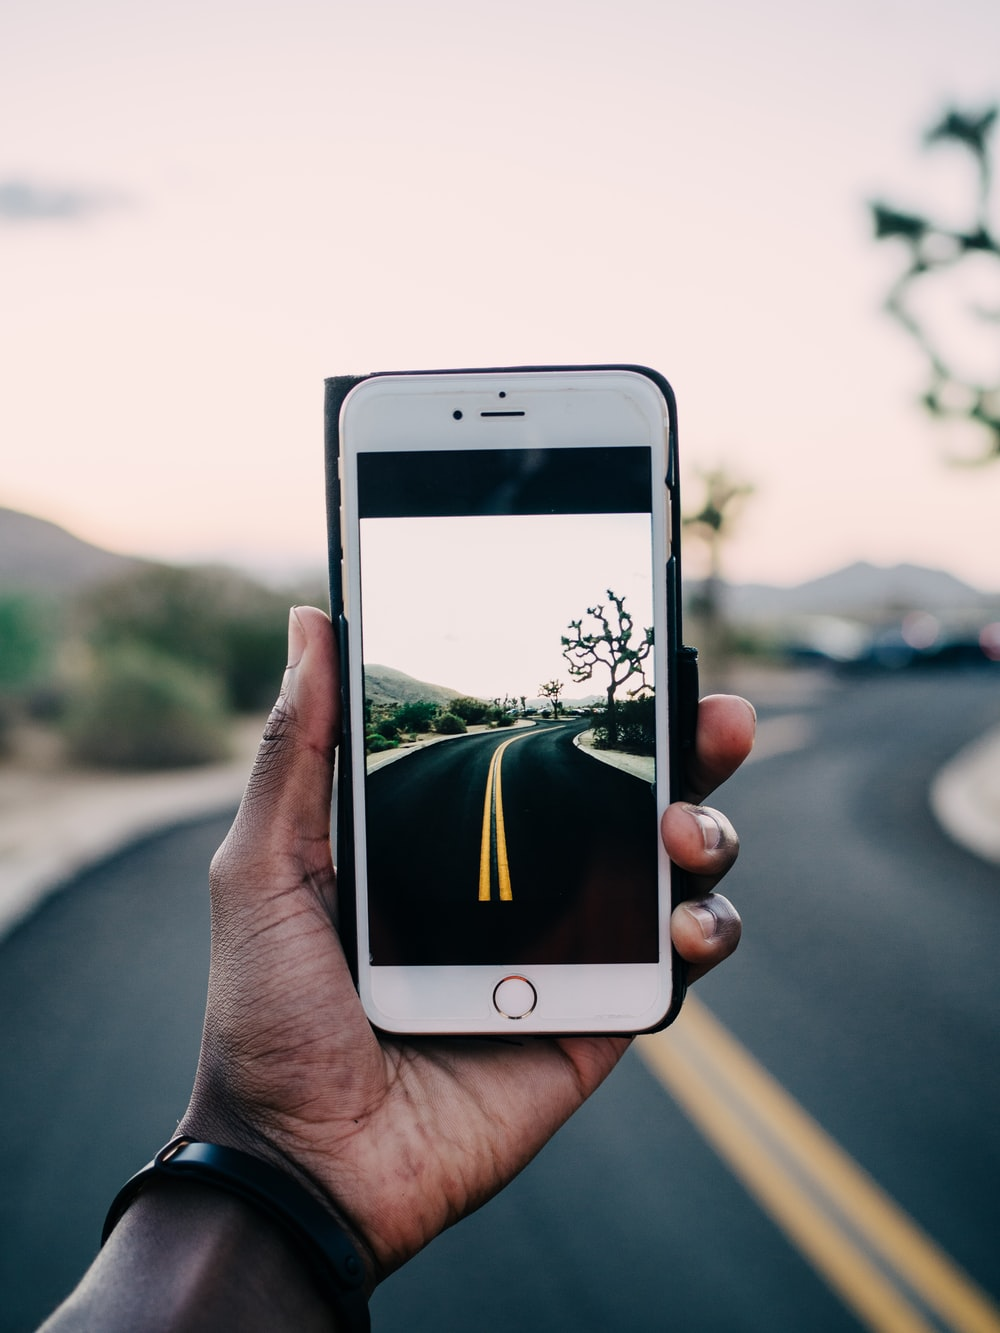 person using gold iPhone 6 capturing road